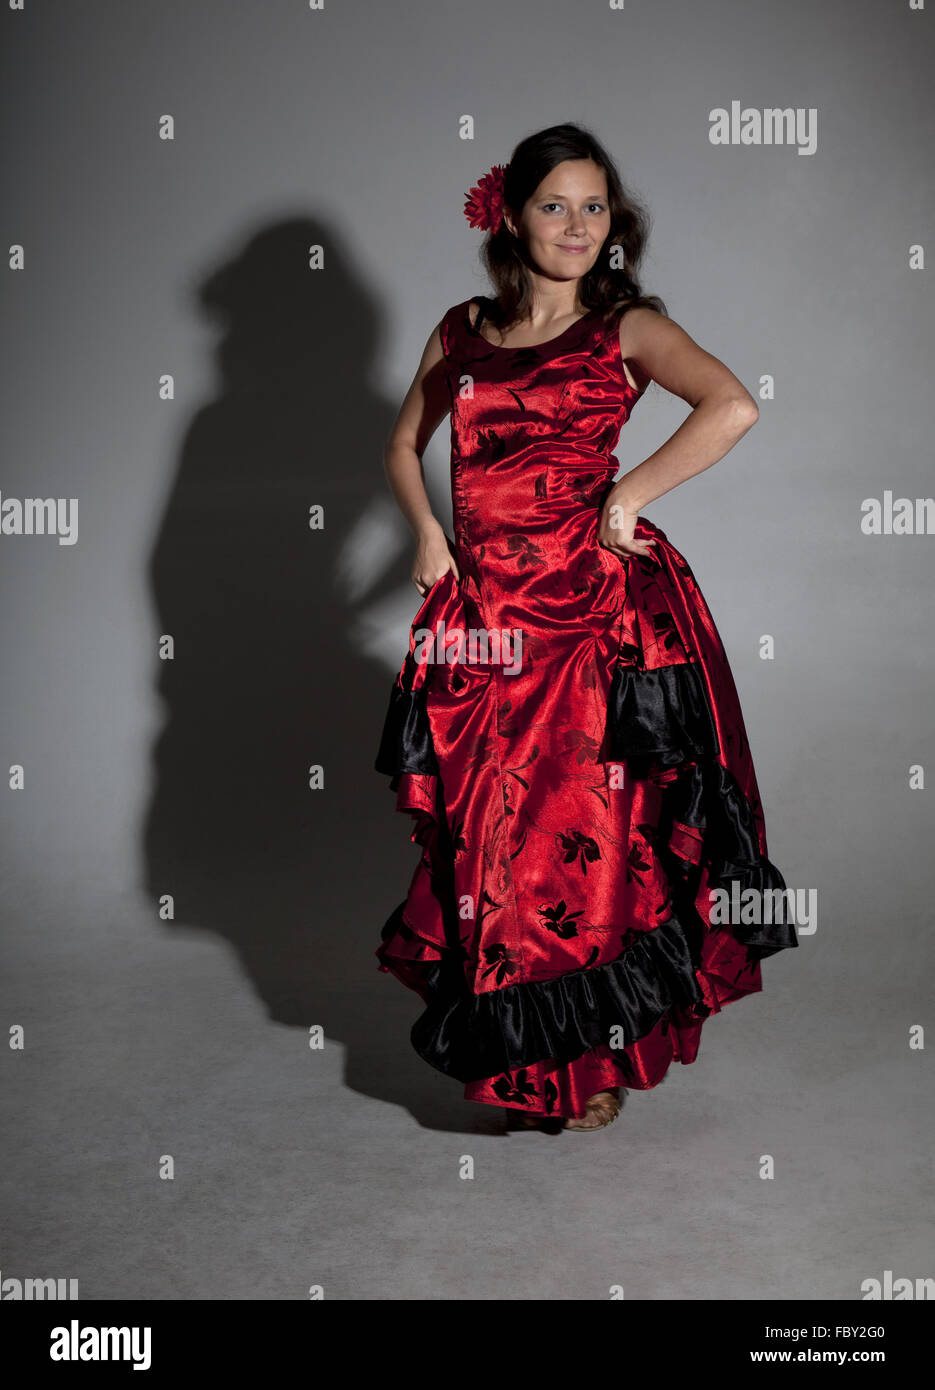 Young woman dancing flamenco - Stock Image